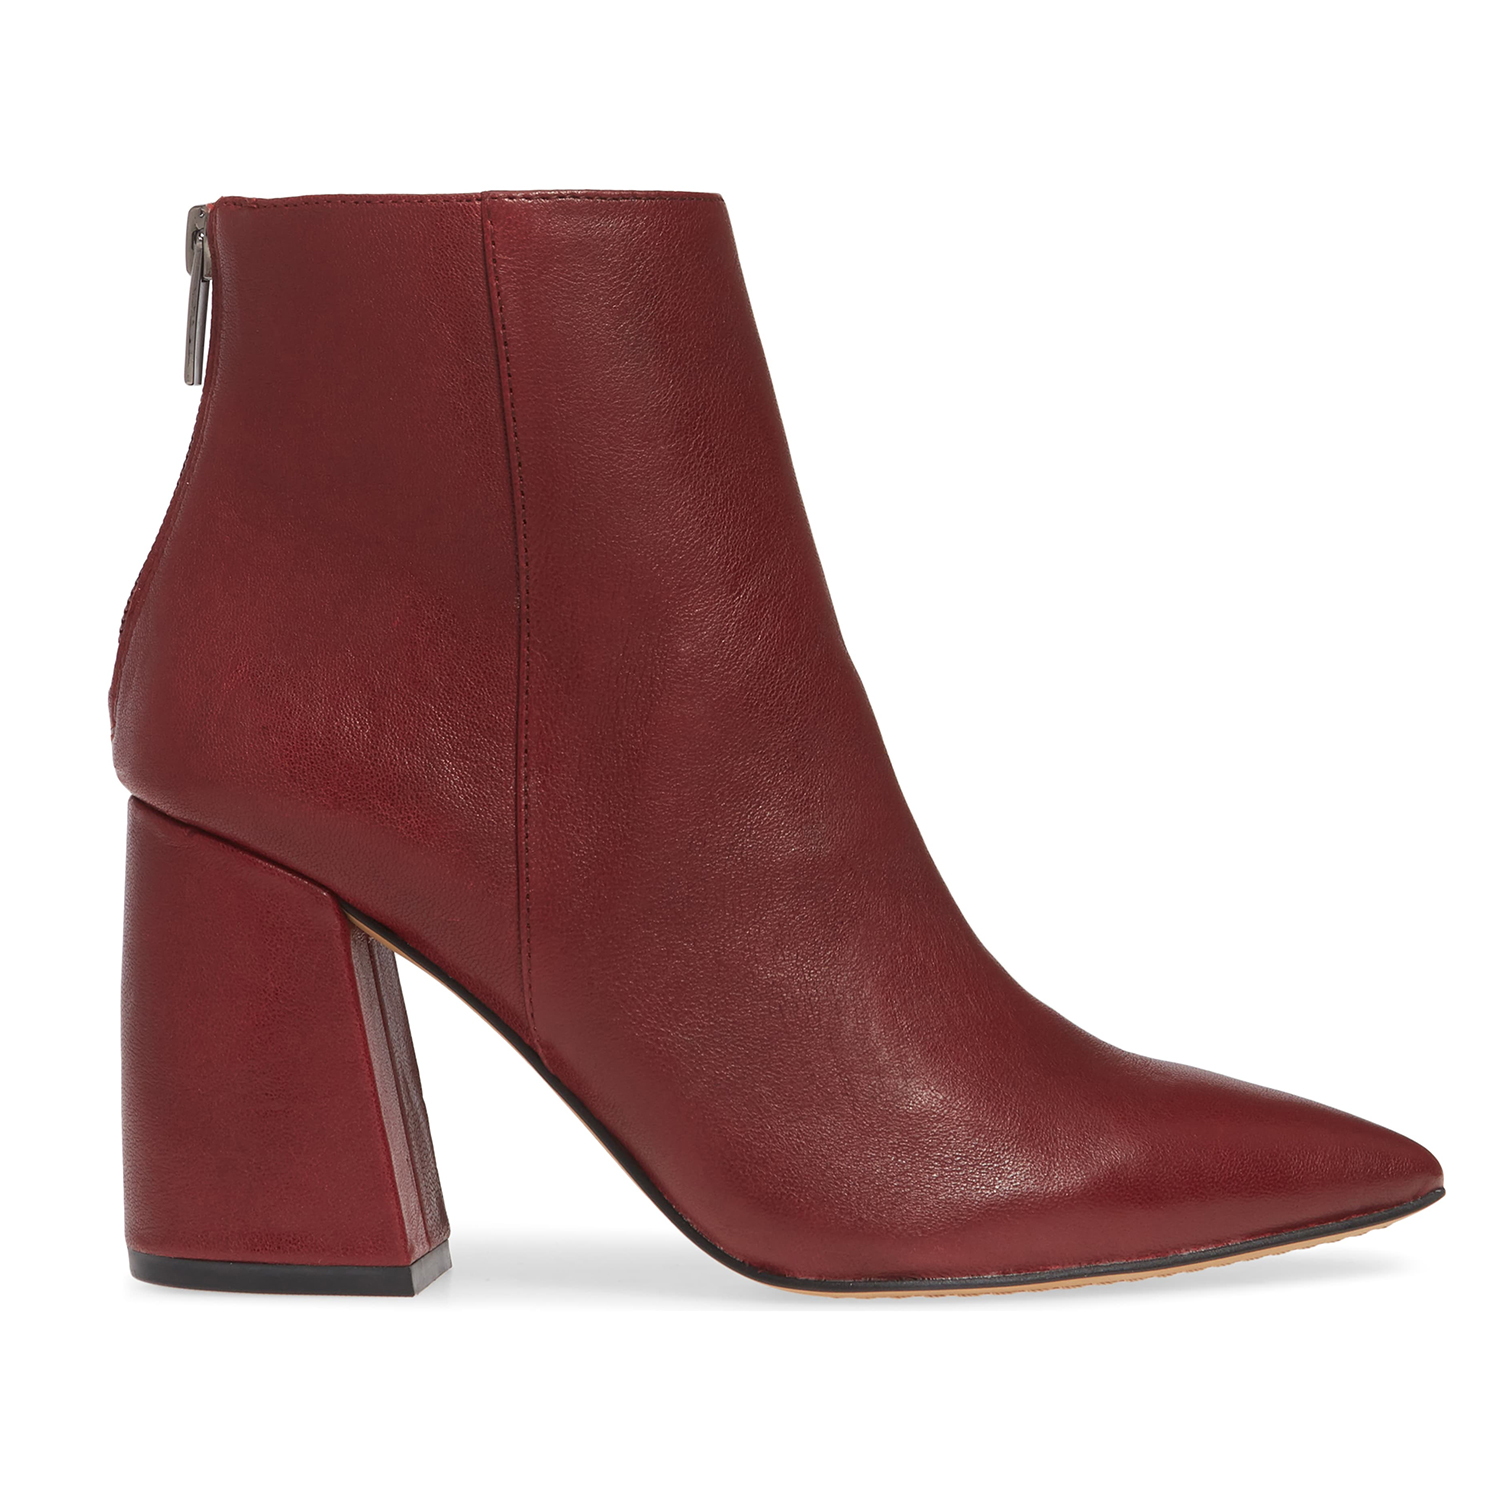 Vince Camuto Benedie Pointed Toe Bootie Beaujolais Leather